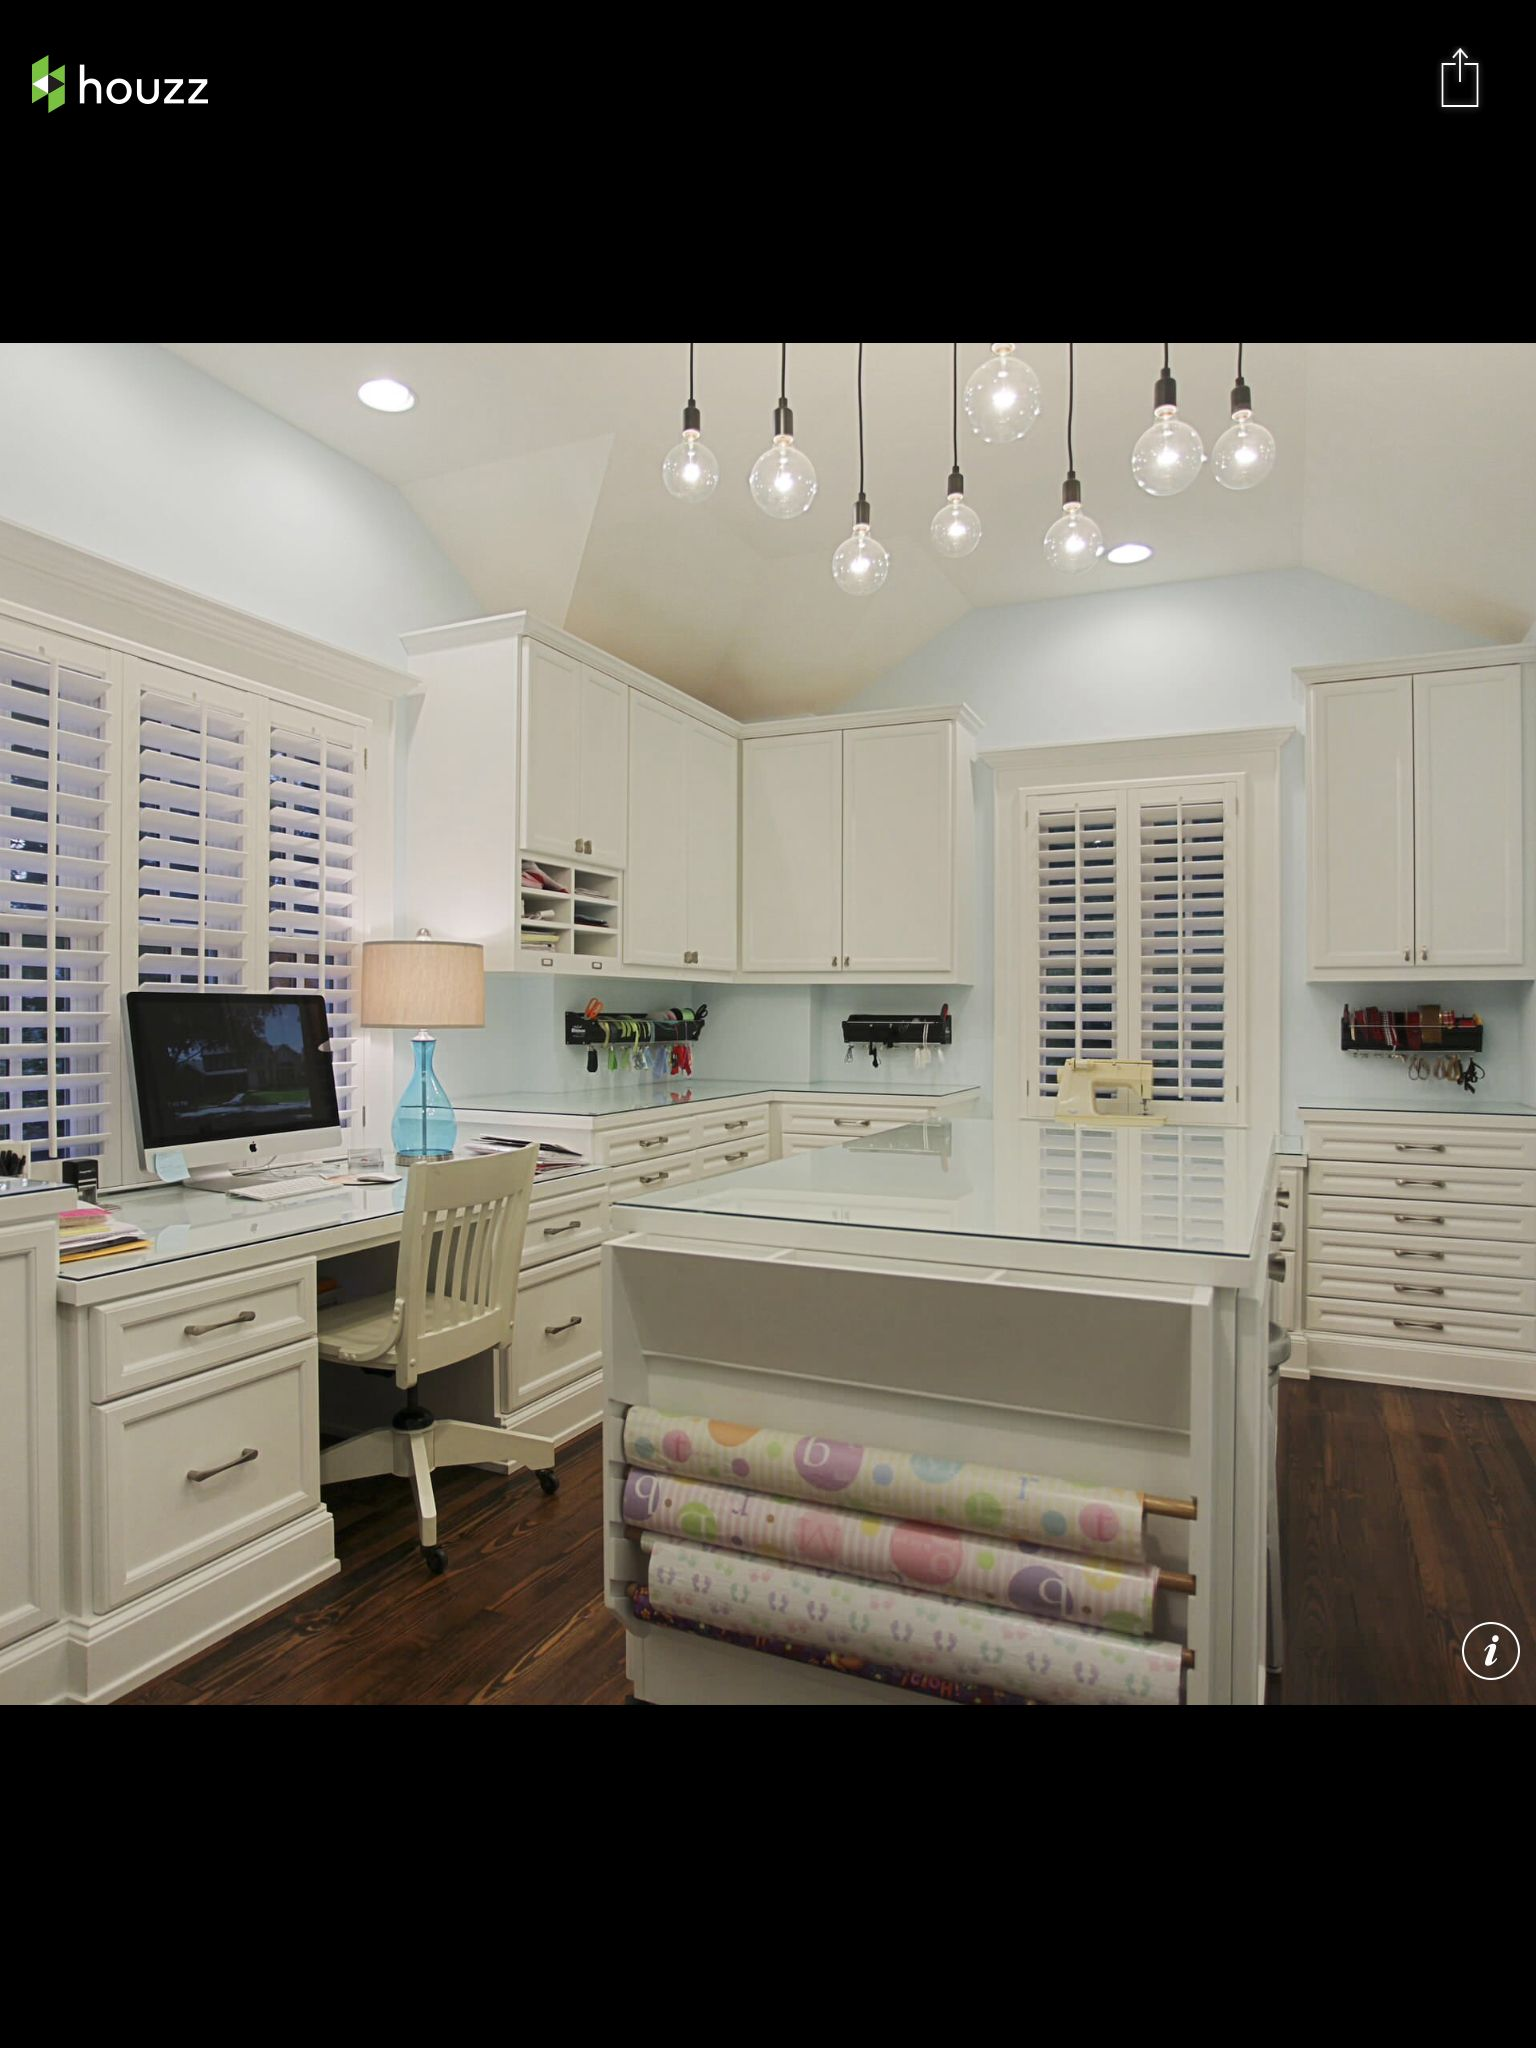 Collections Of 50 Amazing And Practical Craft Room Design Ideas And  Inspirations To See How Other People Re/designed Their Dream For The Future  Craft Room.